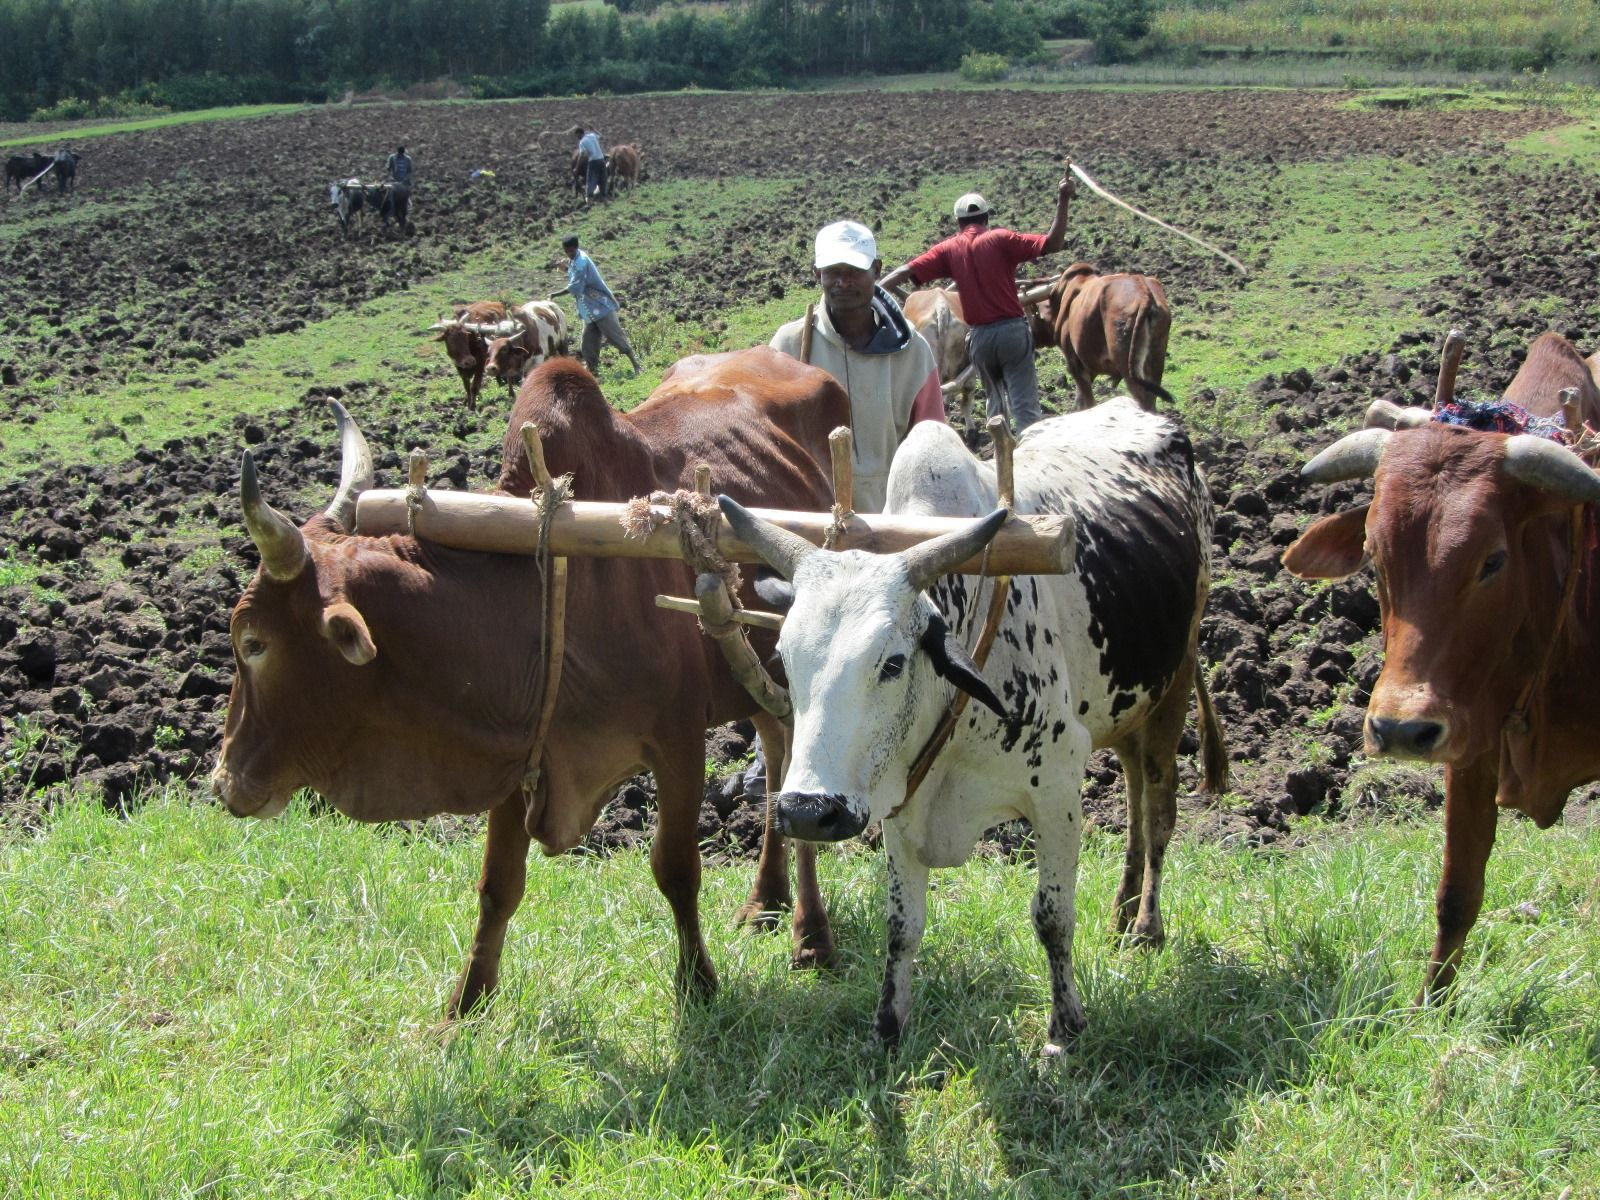 Ethiopian subsistence farmers use animals to work the fields. Photo: courtesy